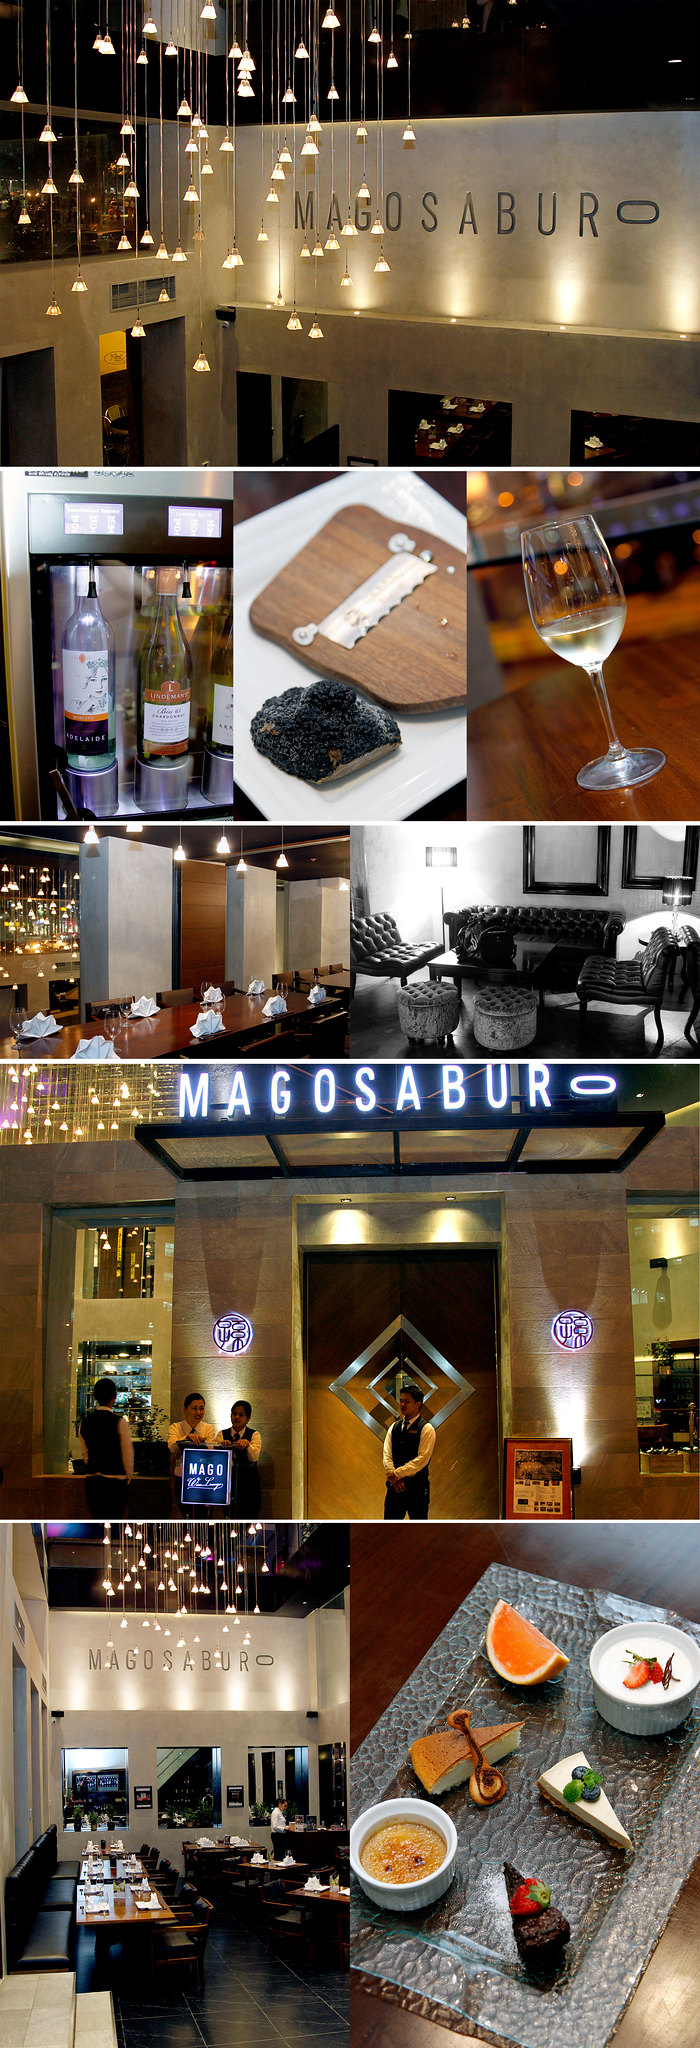 Magosaburo collage small